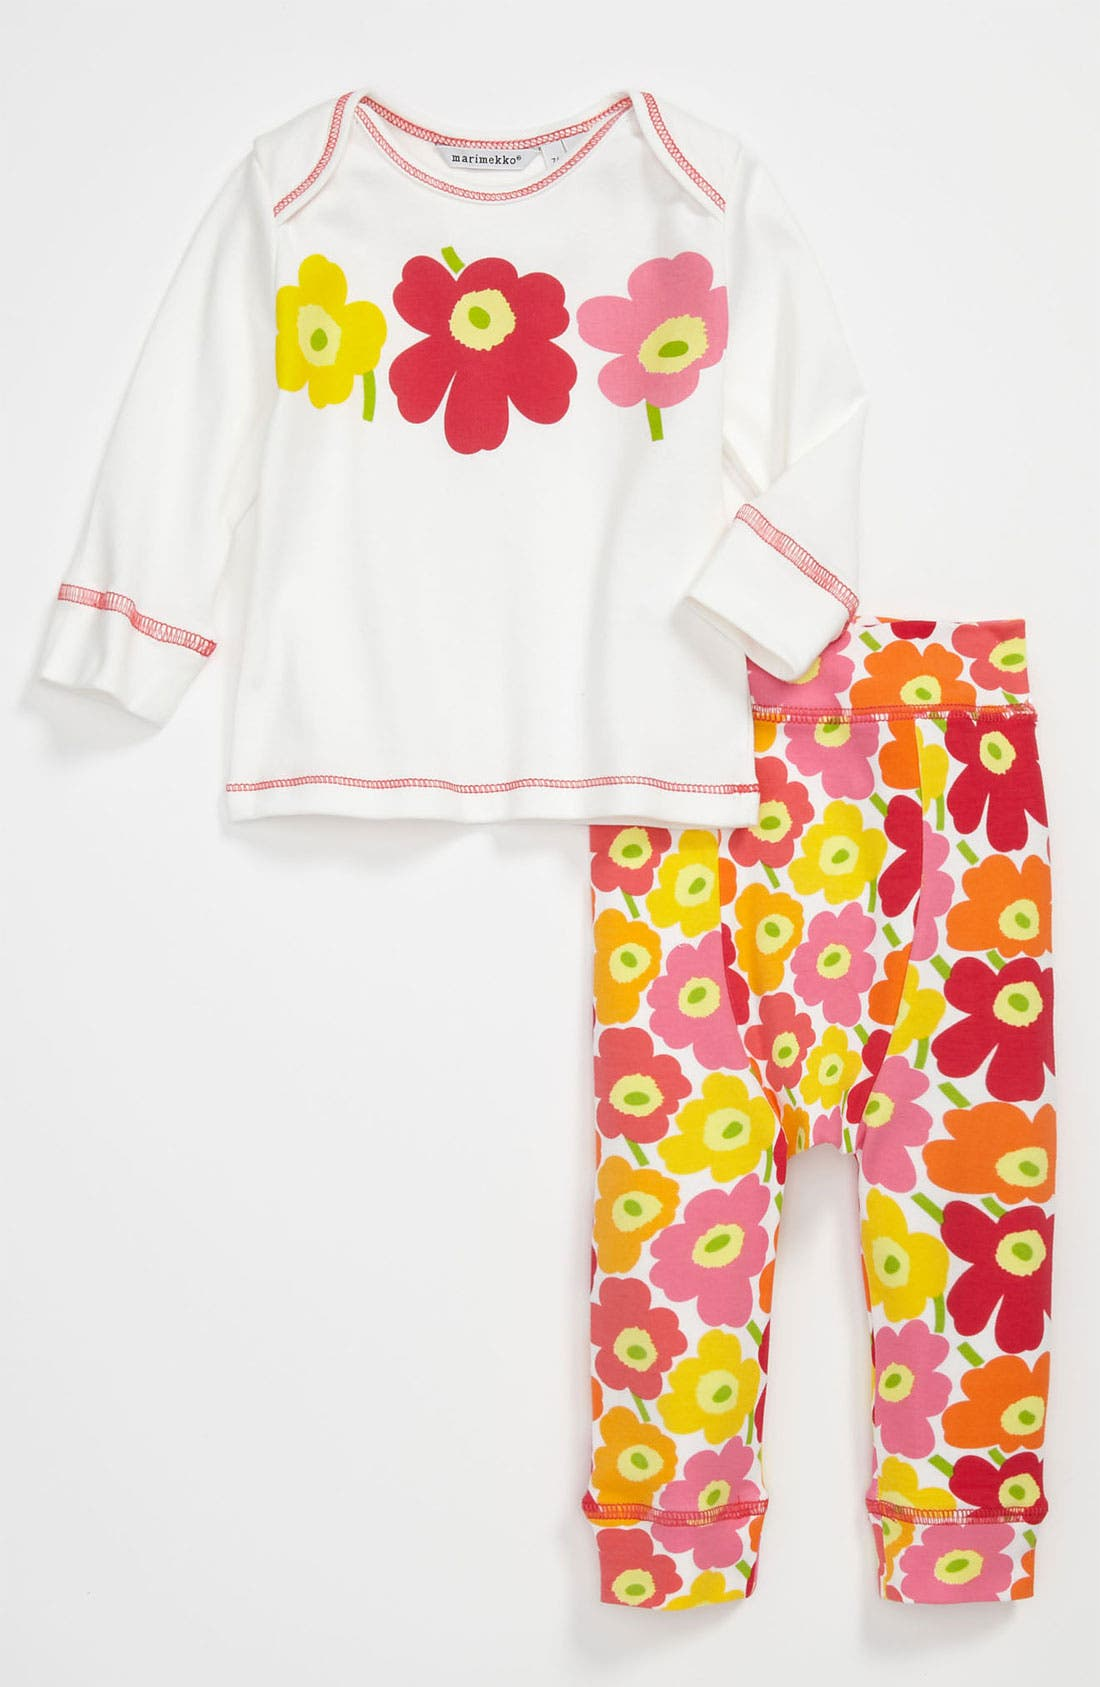 Main Image - Marimekko 'Unikko' Print Top & Leggings (Infant)